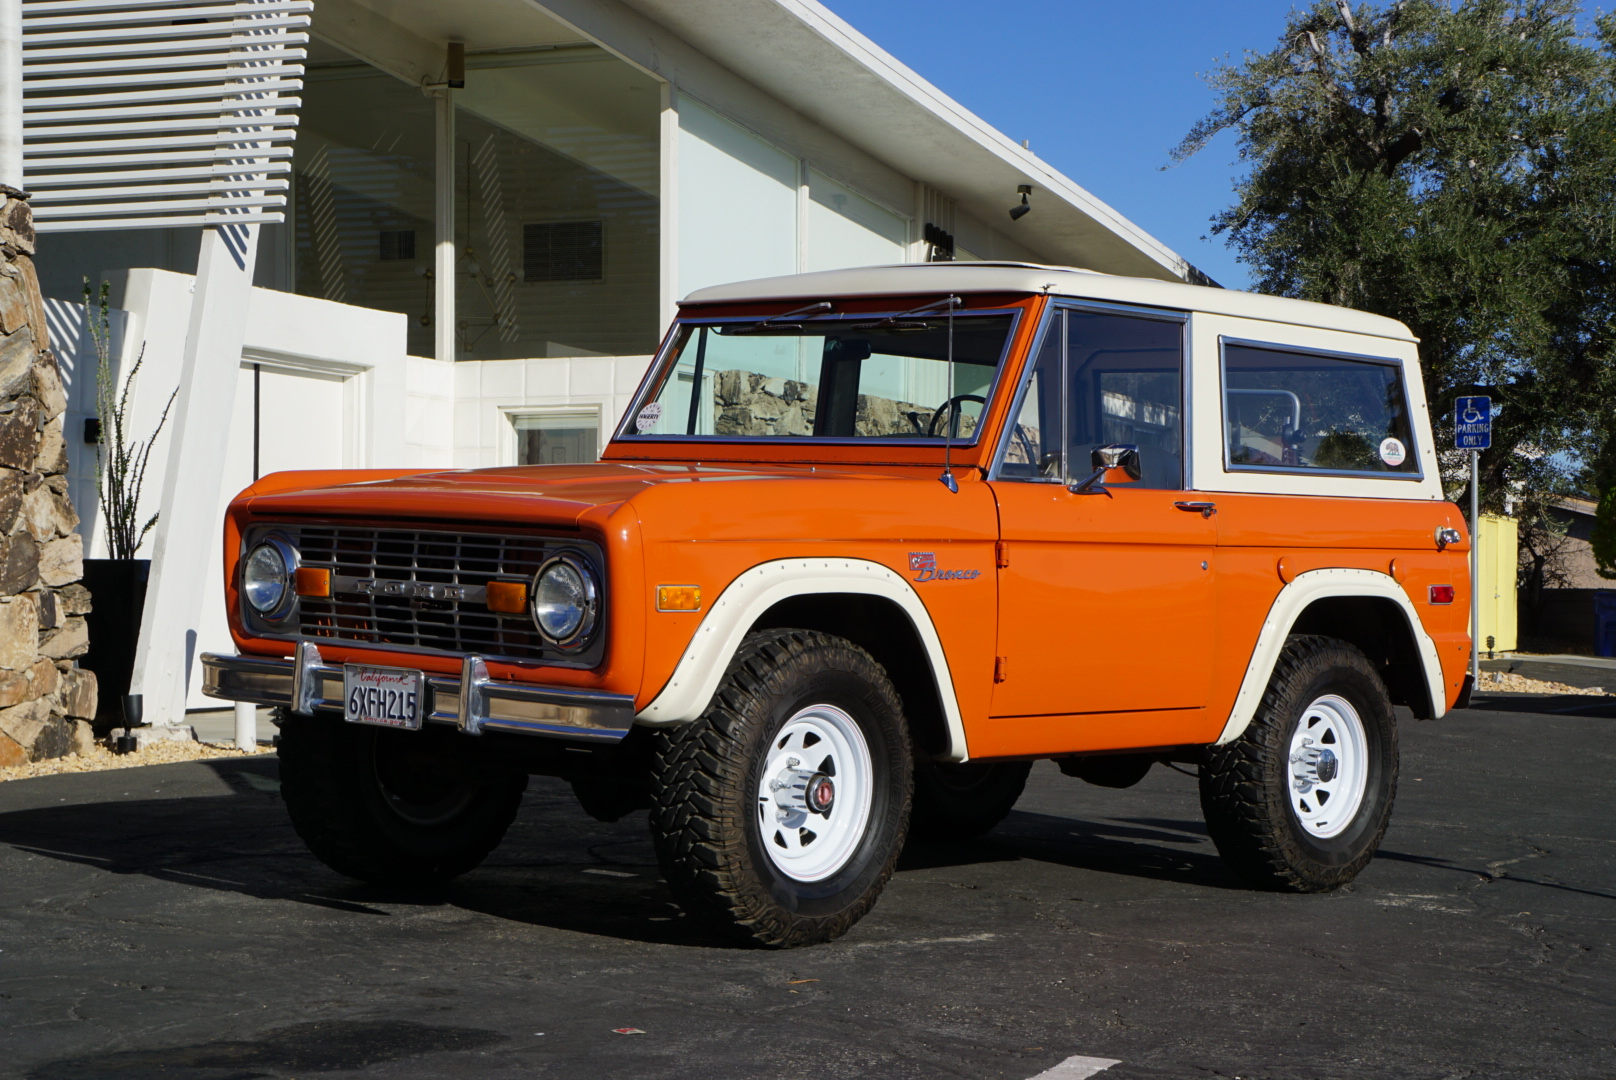 What it's like to drive a 1974 Ford Bronco thumbnail